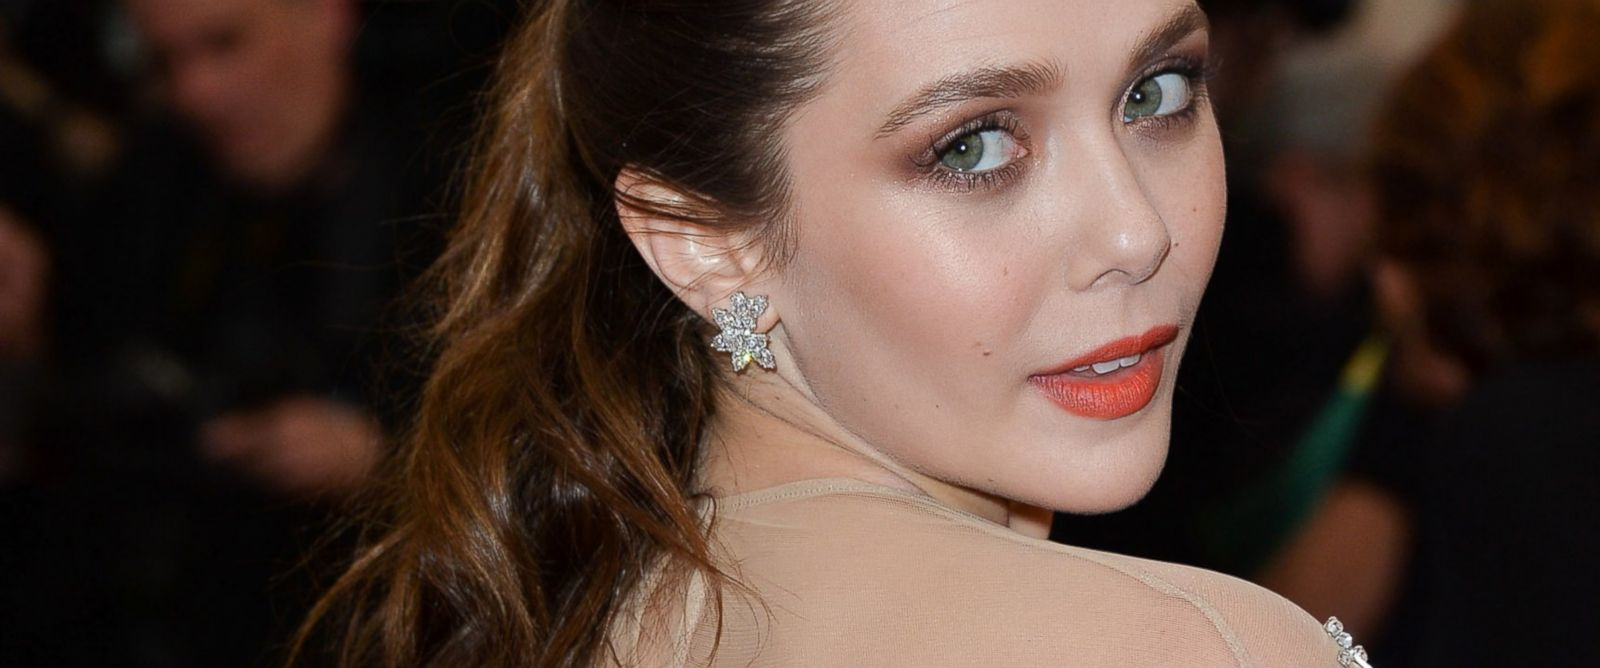 """PHOTO: Elizabeth Olsen attends the """"Charles James: Beyond Fashion"""" Costume Institute Gala at the Metropolitan Museum of Art, May 5, 2014 in New York City."""